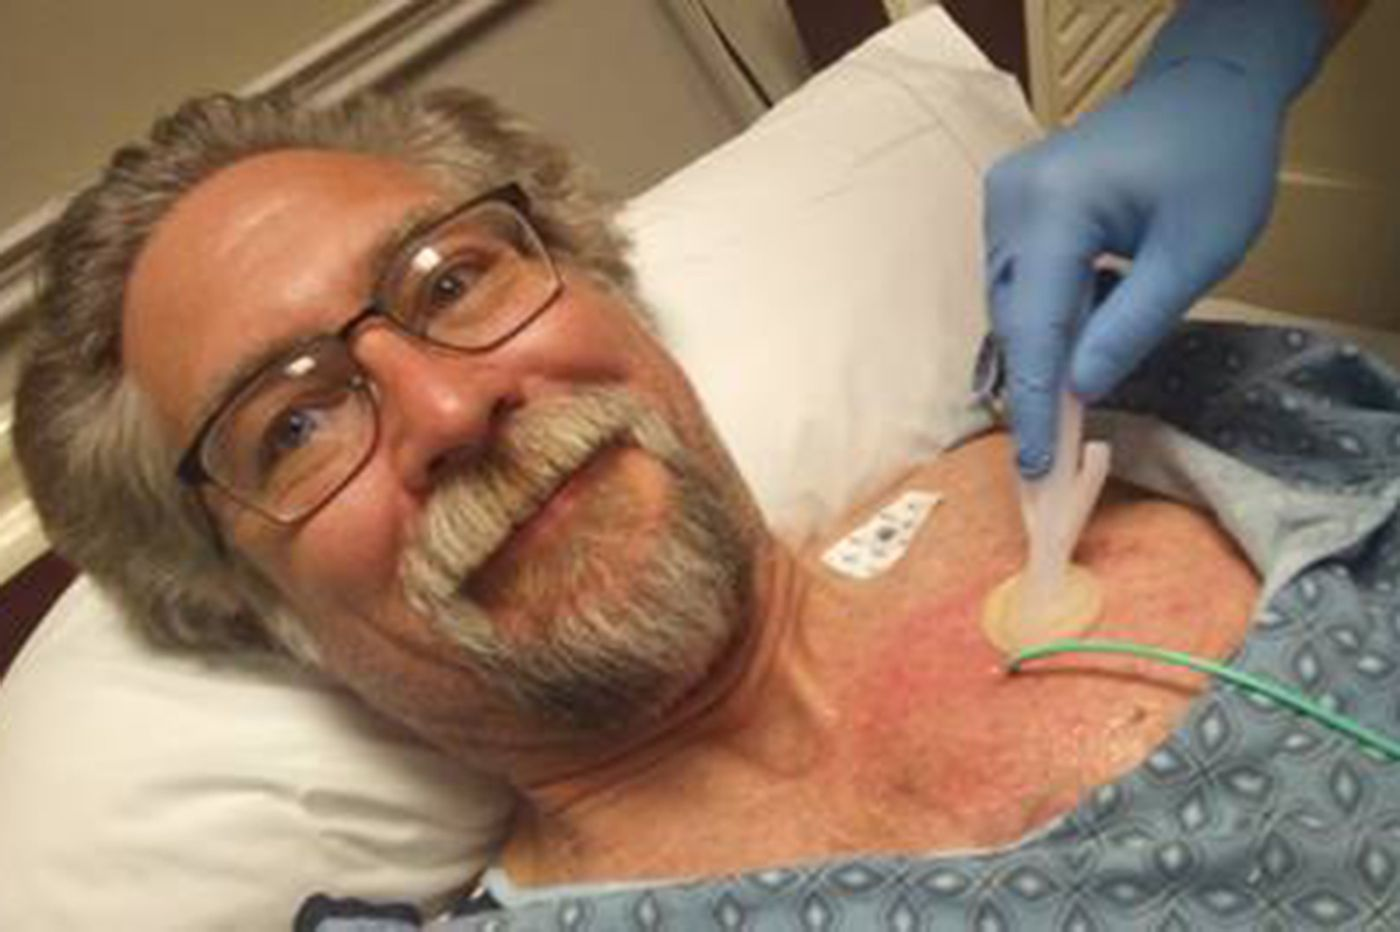 Opioids are the only way he can manage his cancer pain. Stigma creates more problems